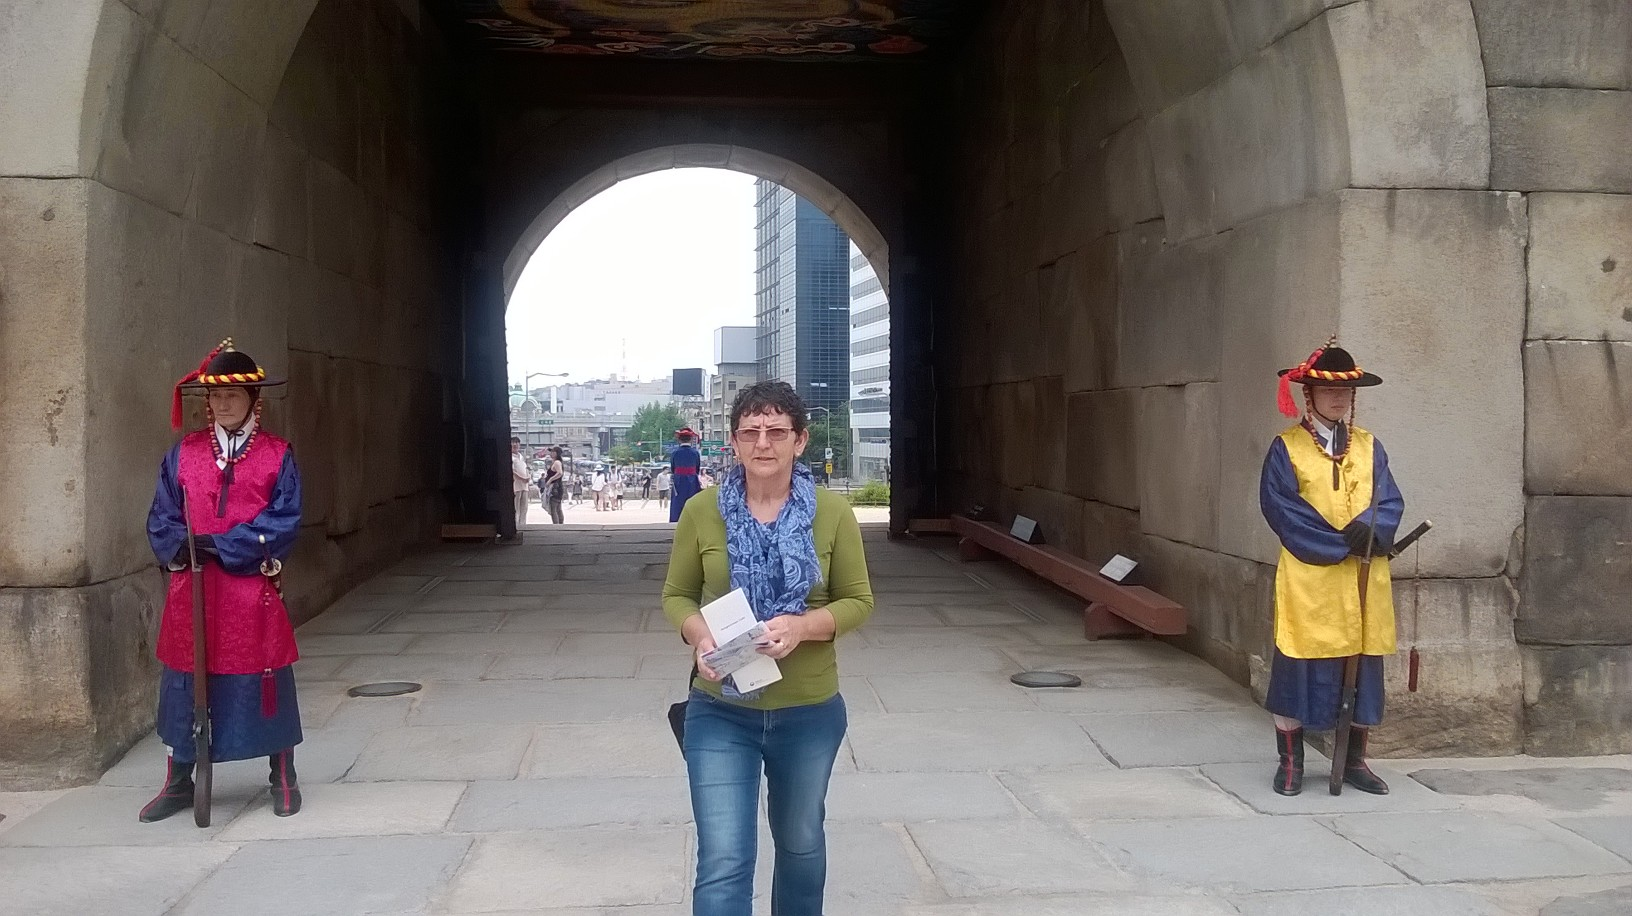 In front of one of the city gates